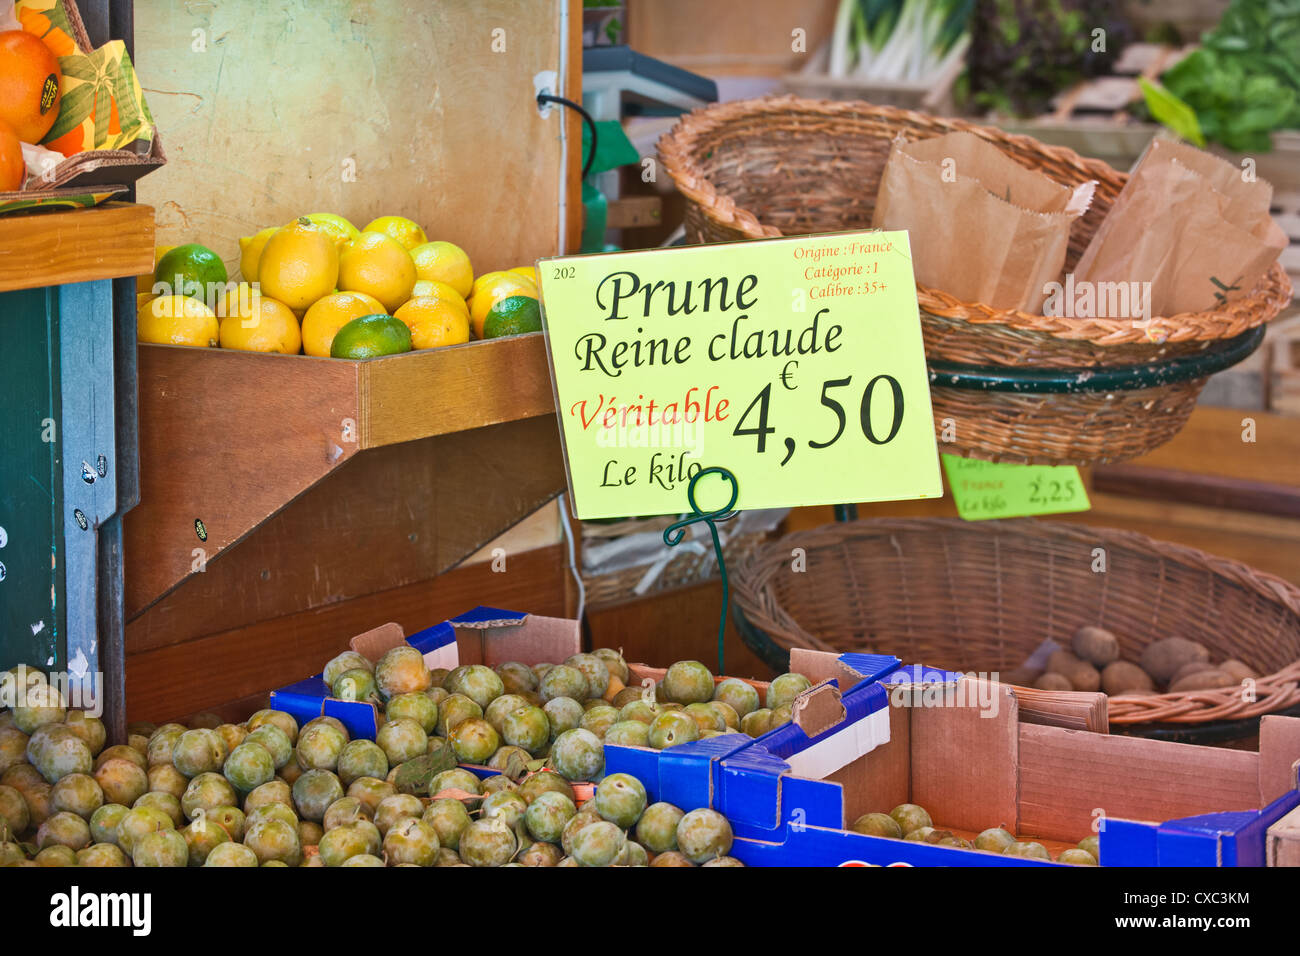 A market scene that displays some of the fruit and vegetables available to buy in Cherbourg, Northern France. - Stock Image